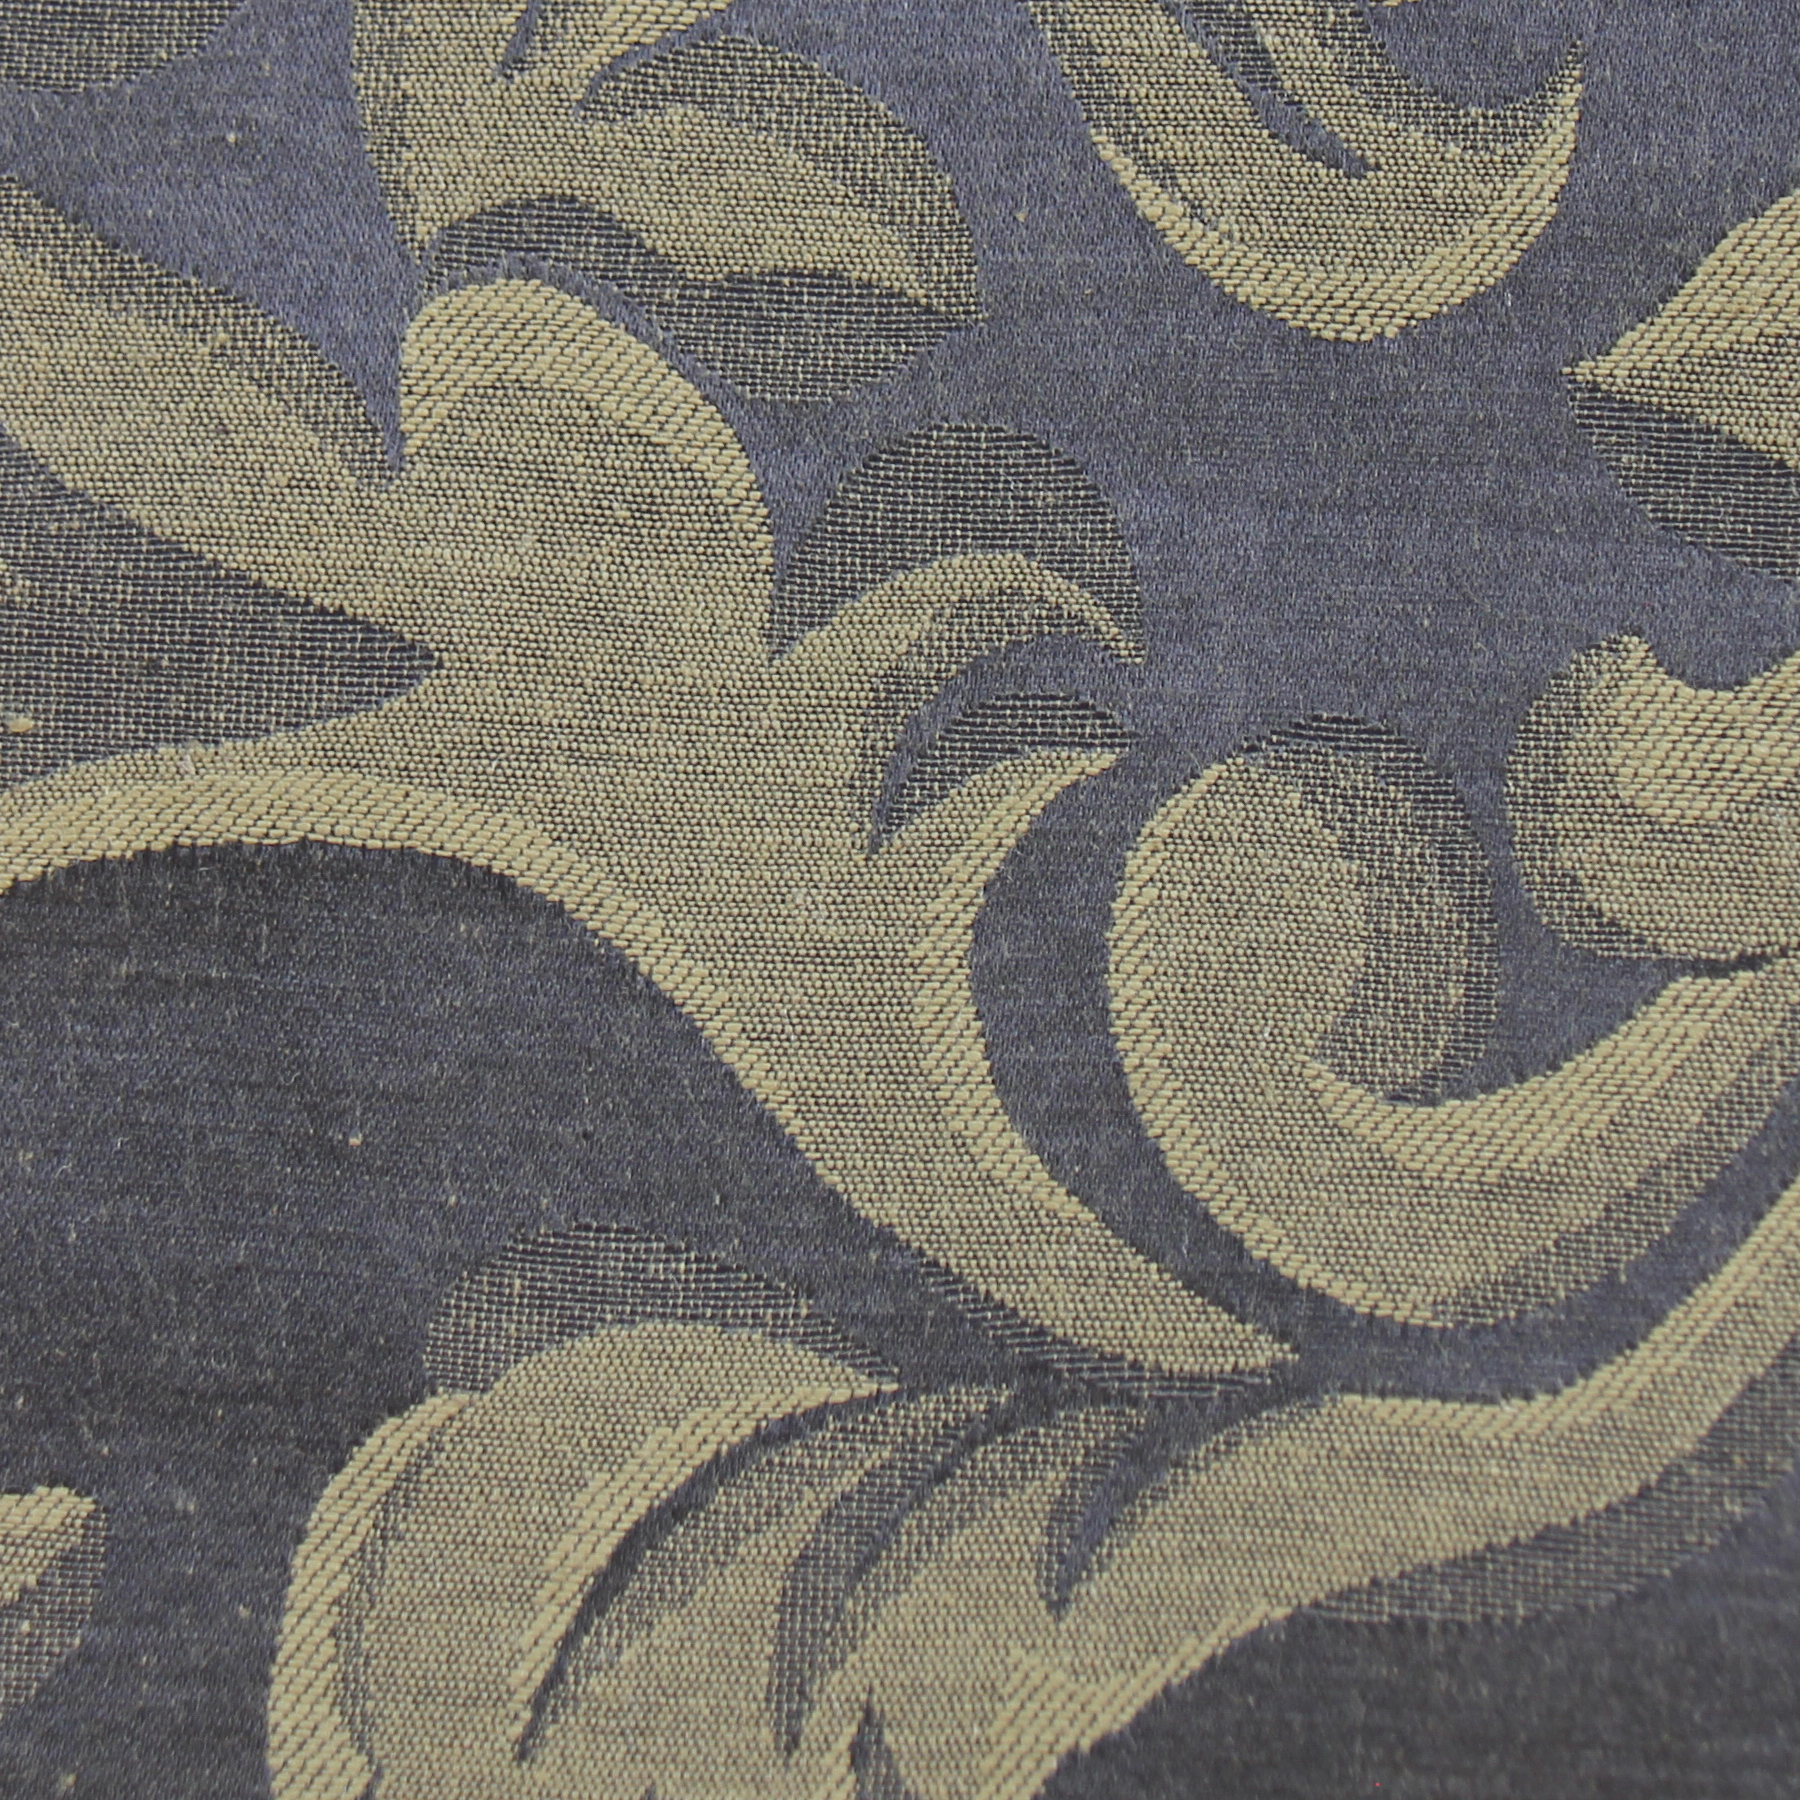 NO 36-45 RS X1 D NO 28 Fabric Upholstery Sample